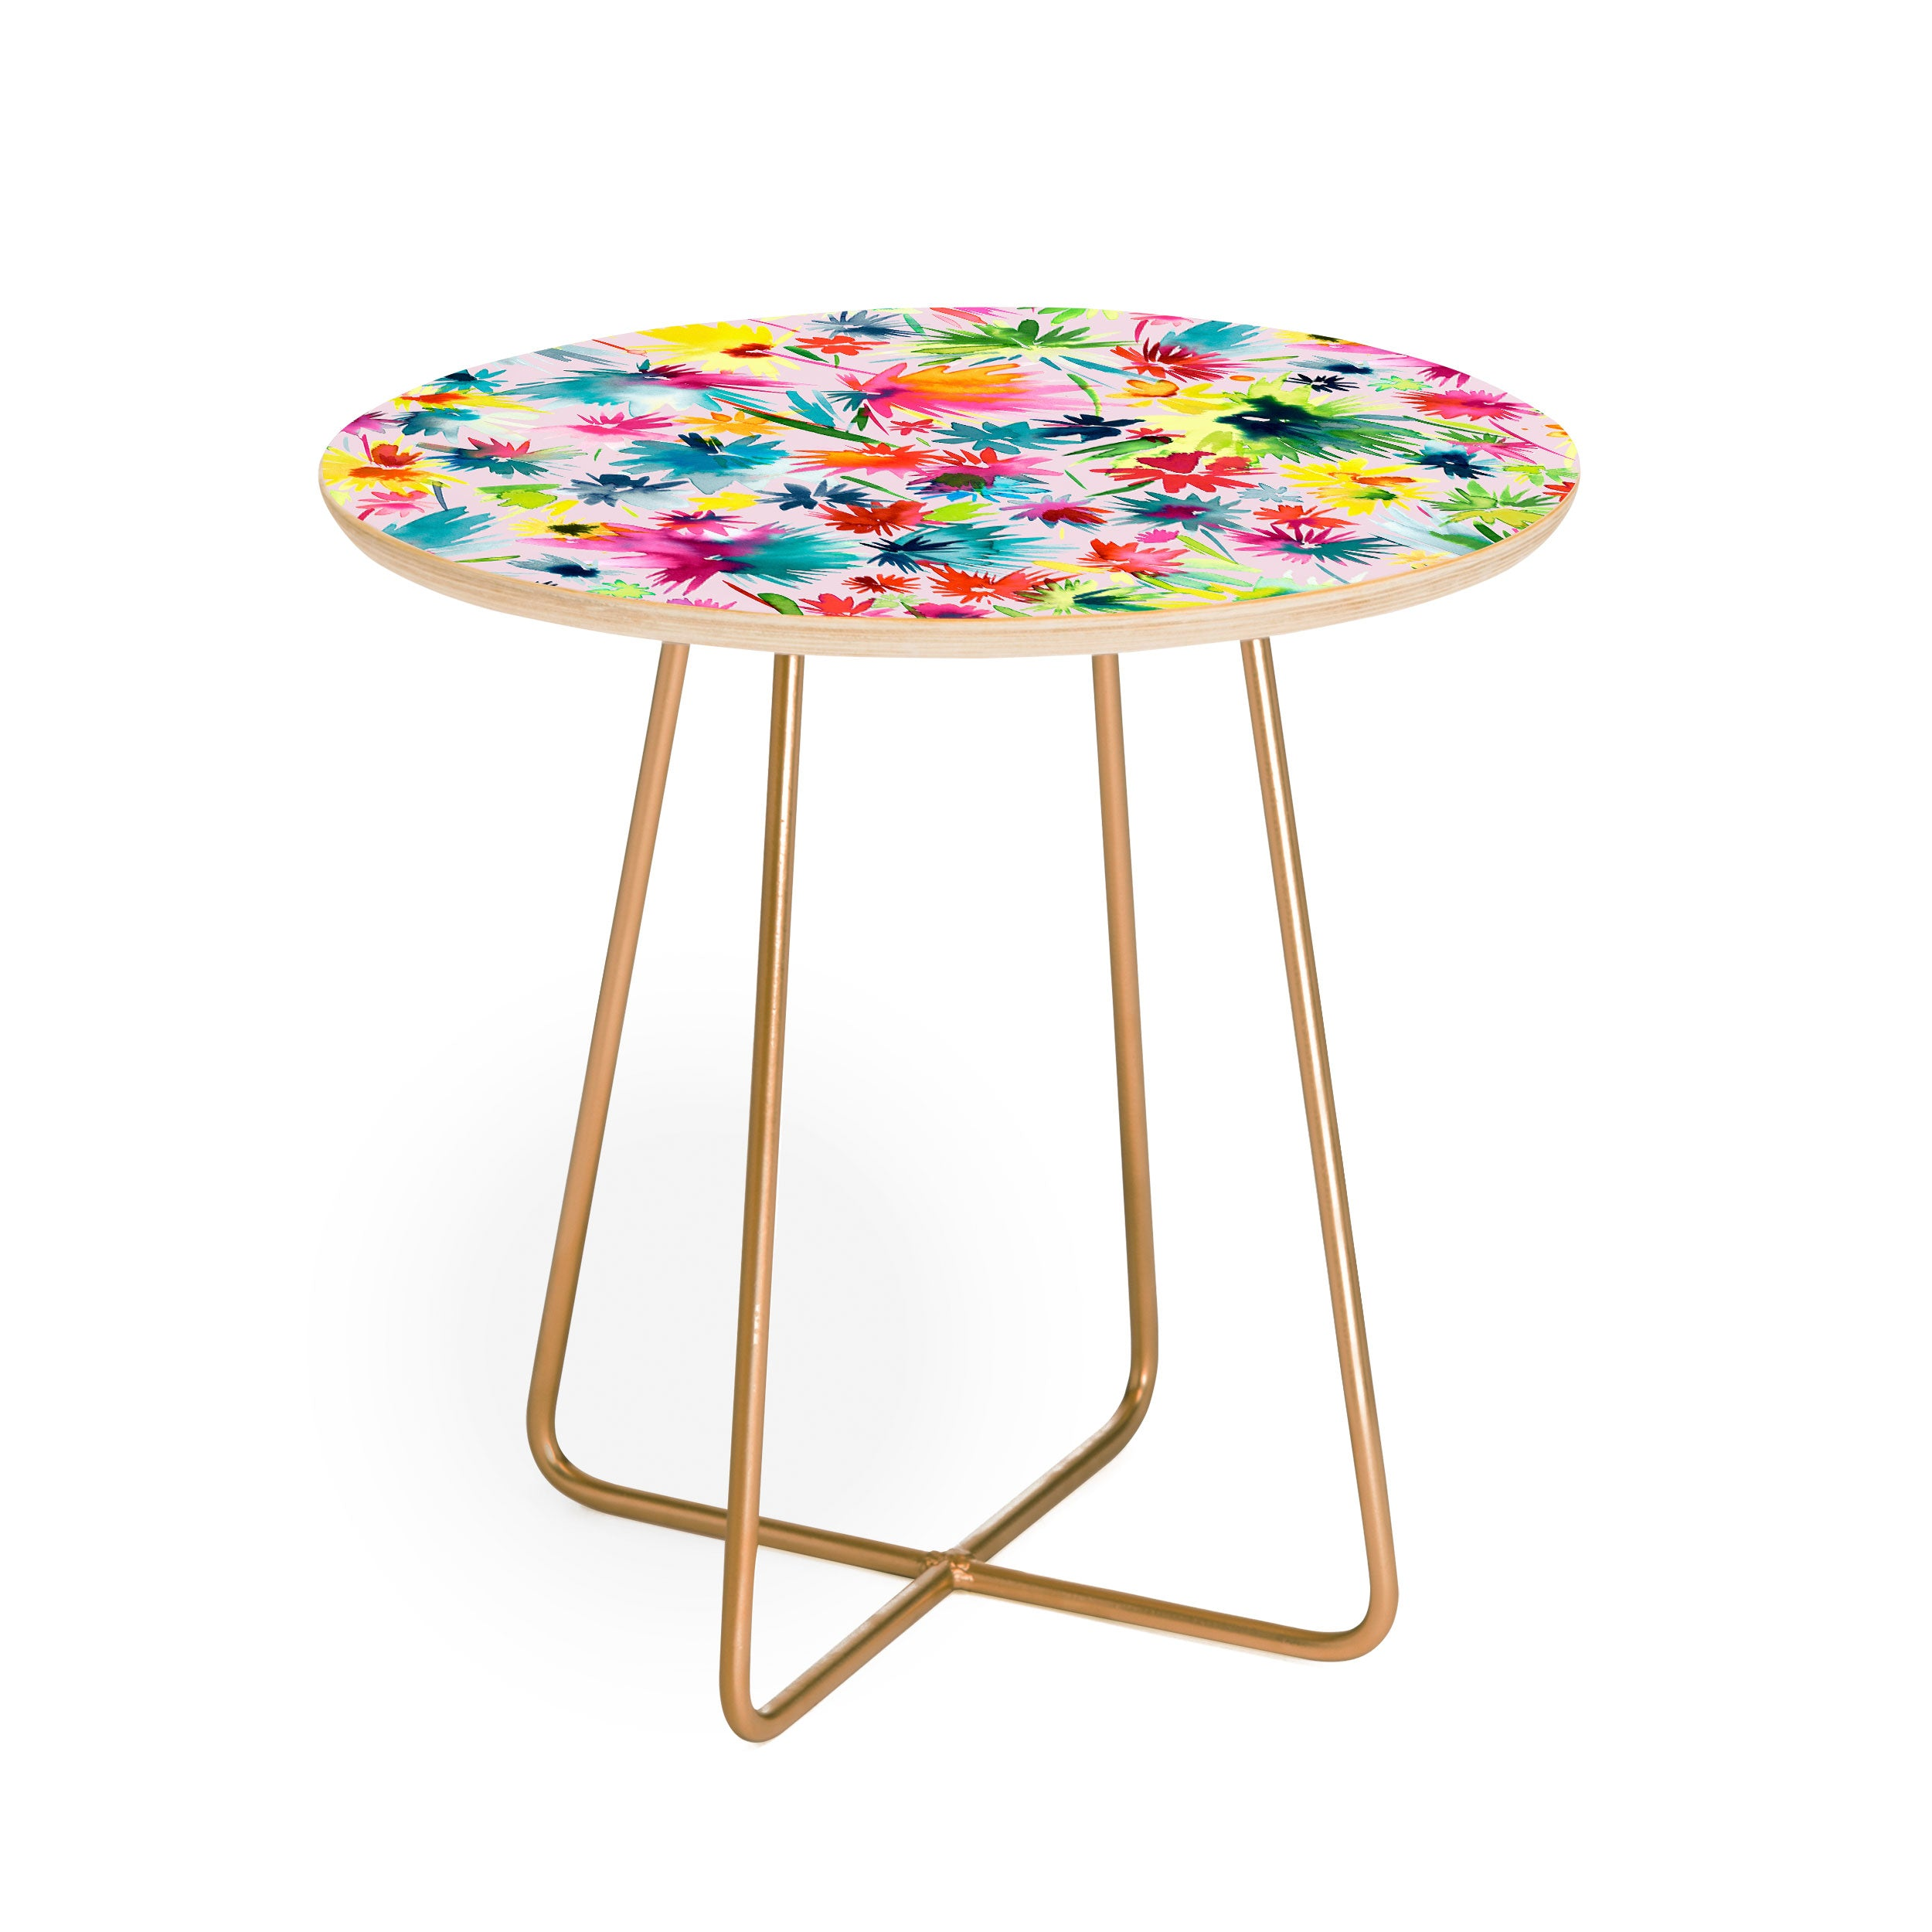 Ninola Design Abstract Flowers Jungle Round Side Table